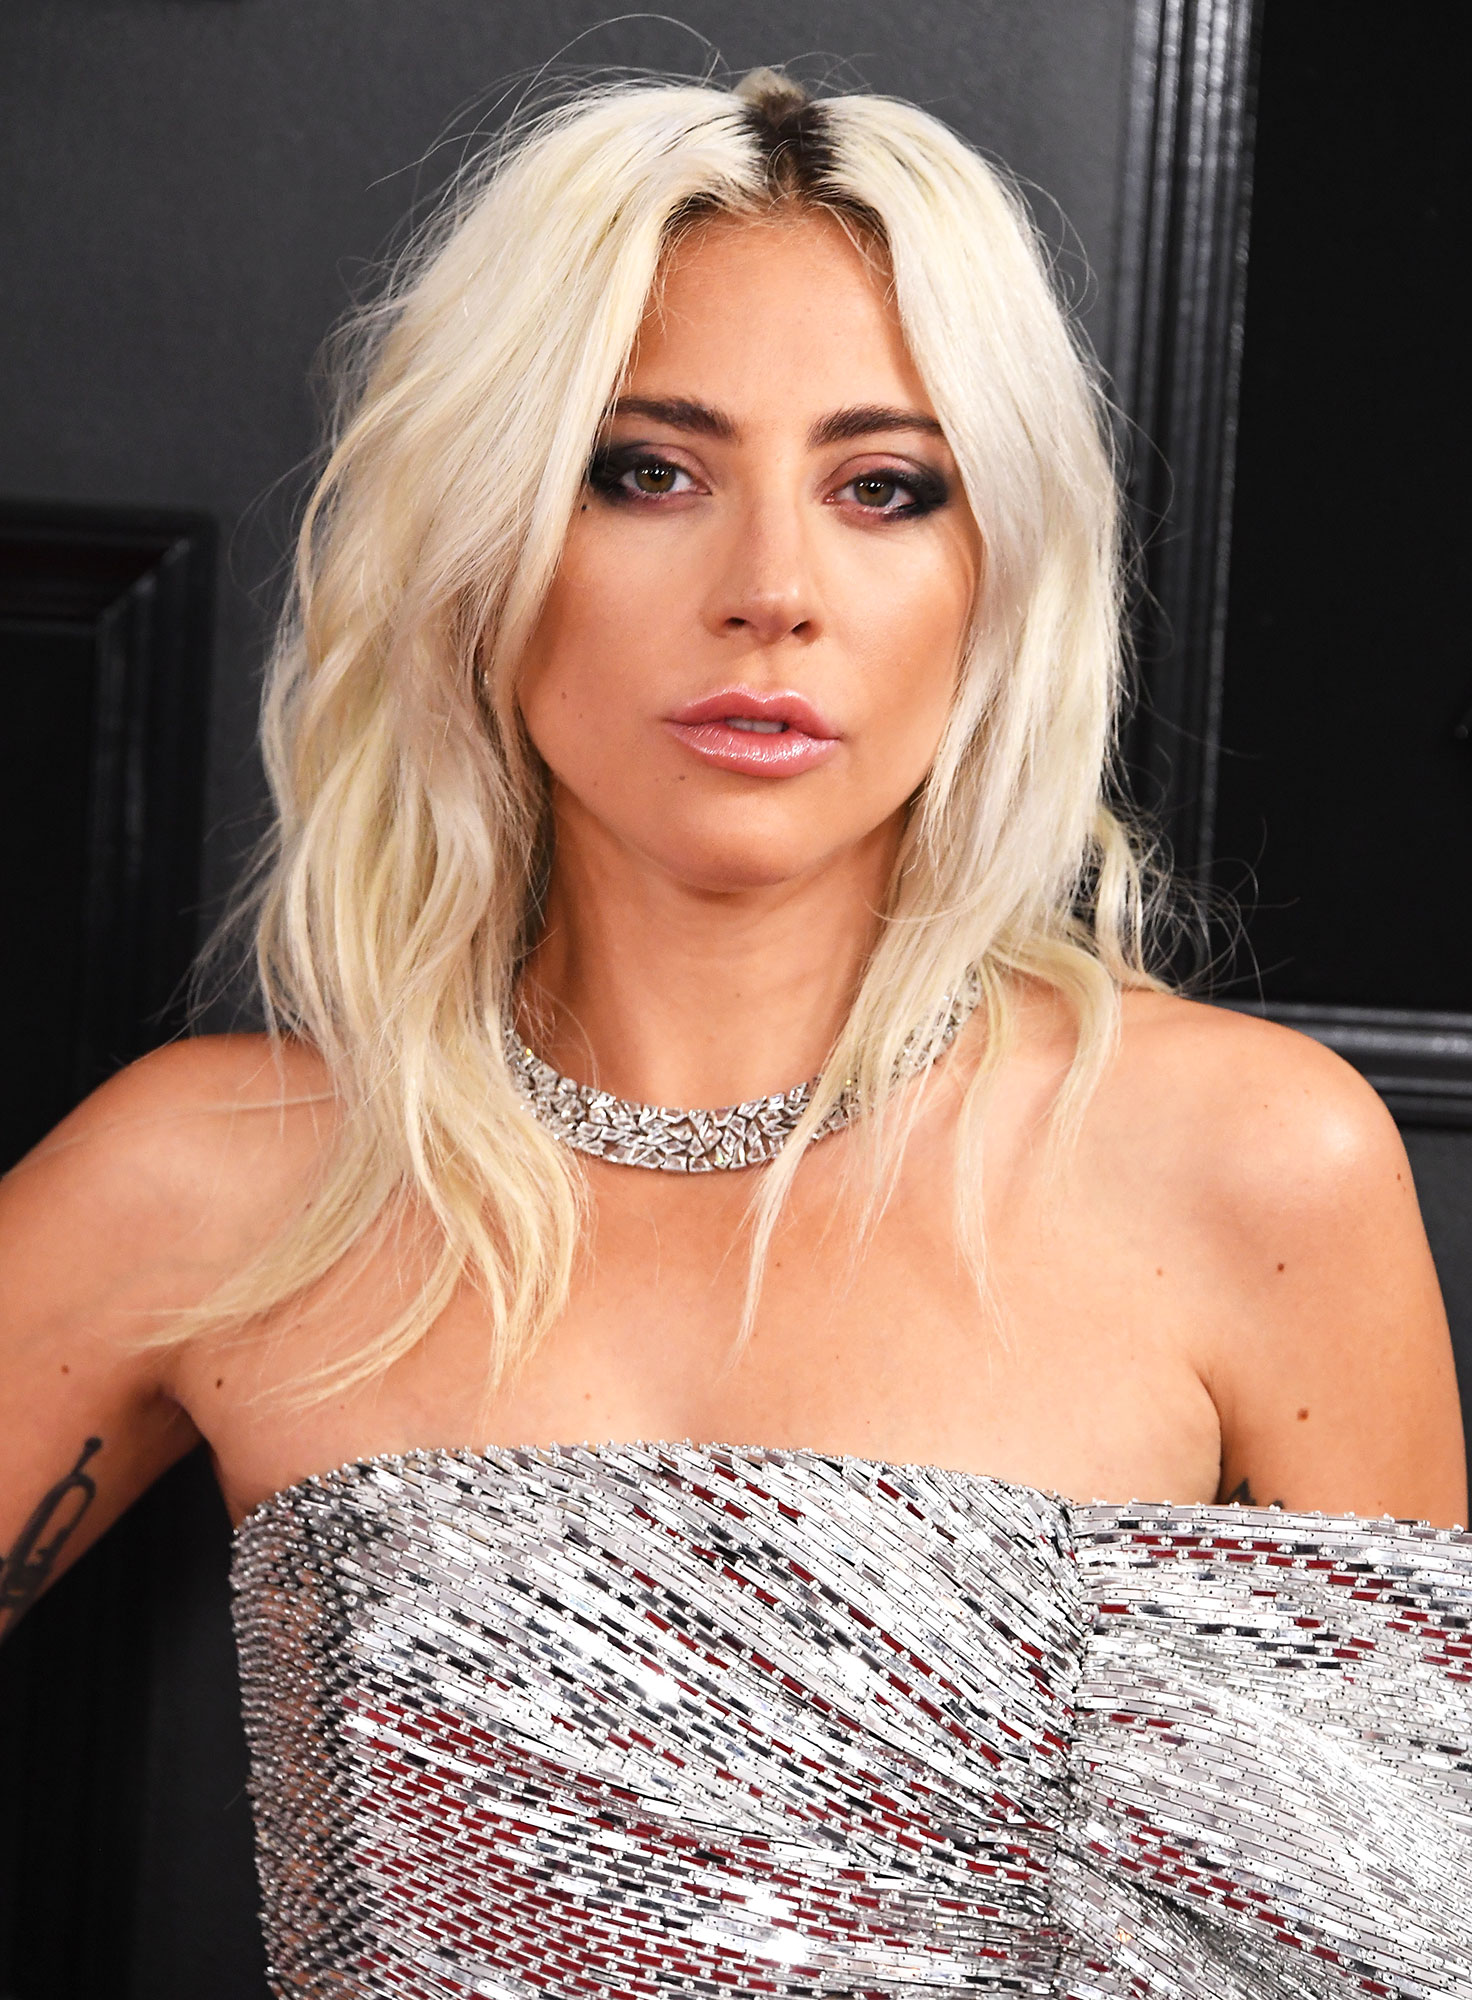 grammys 2019 Lady Gaga - What hair to wear with the best-dressed gown of the night? If you're Gaga, you go decidedly low-key with undone waves.